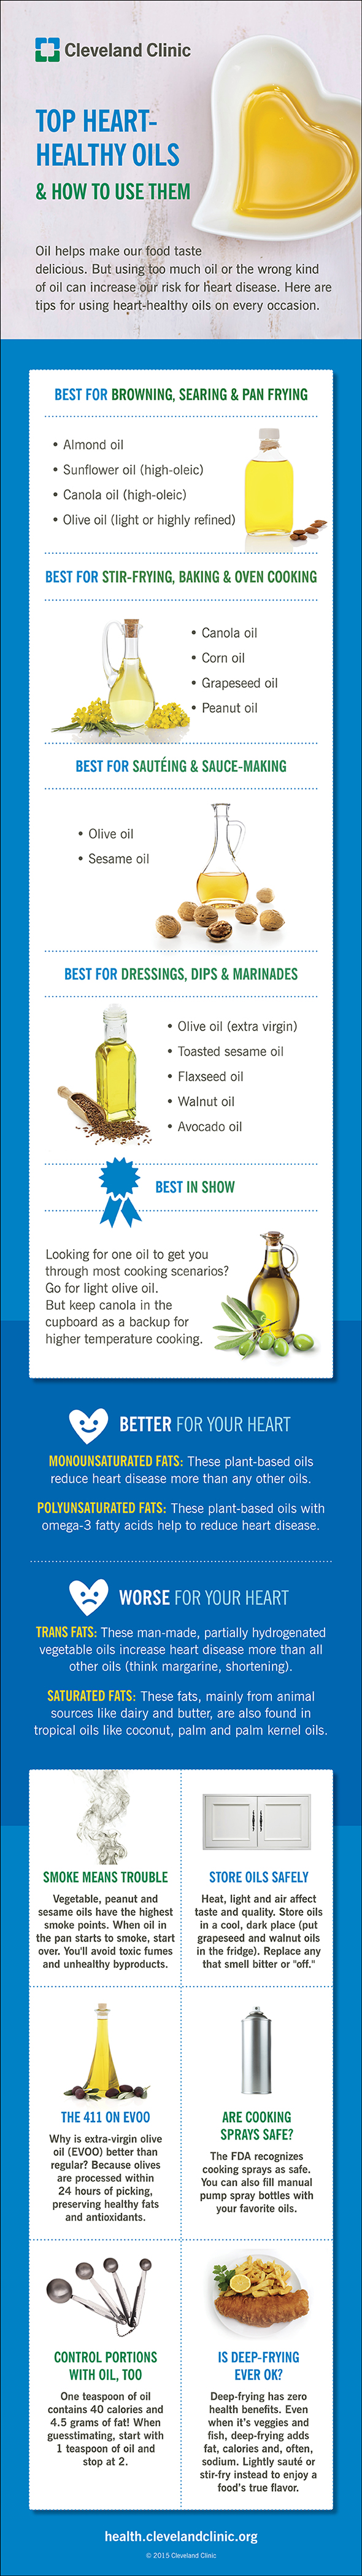 Top Heart-Healthy Oils & How to Use Them